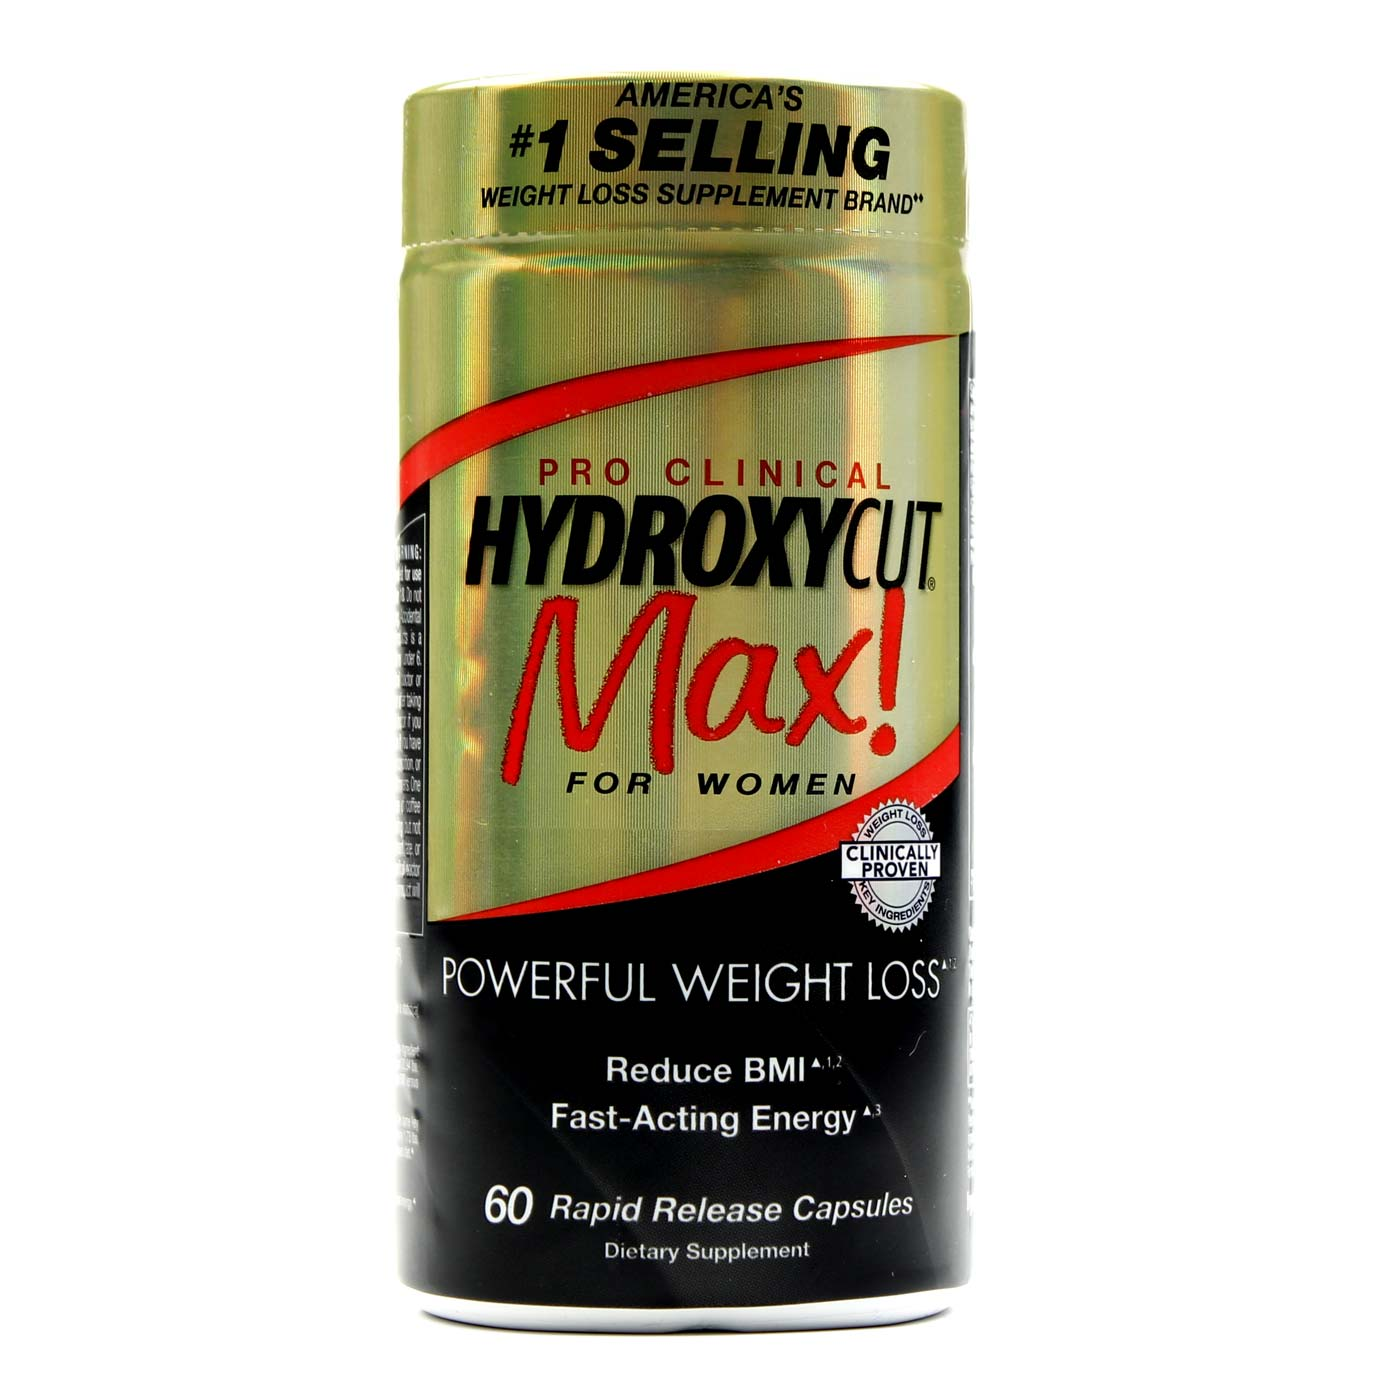 Hydroxycut max for women review